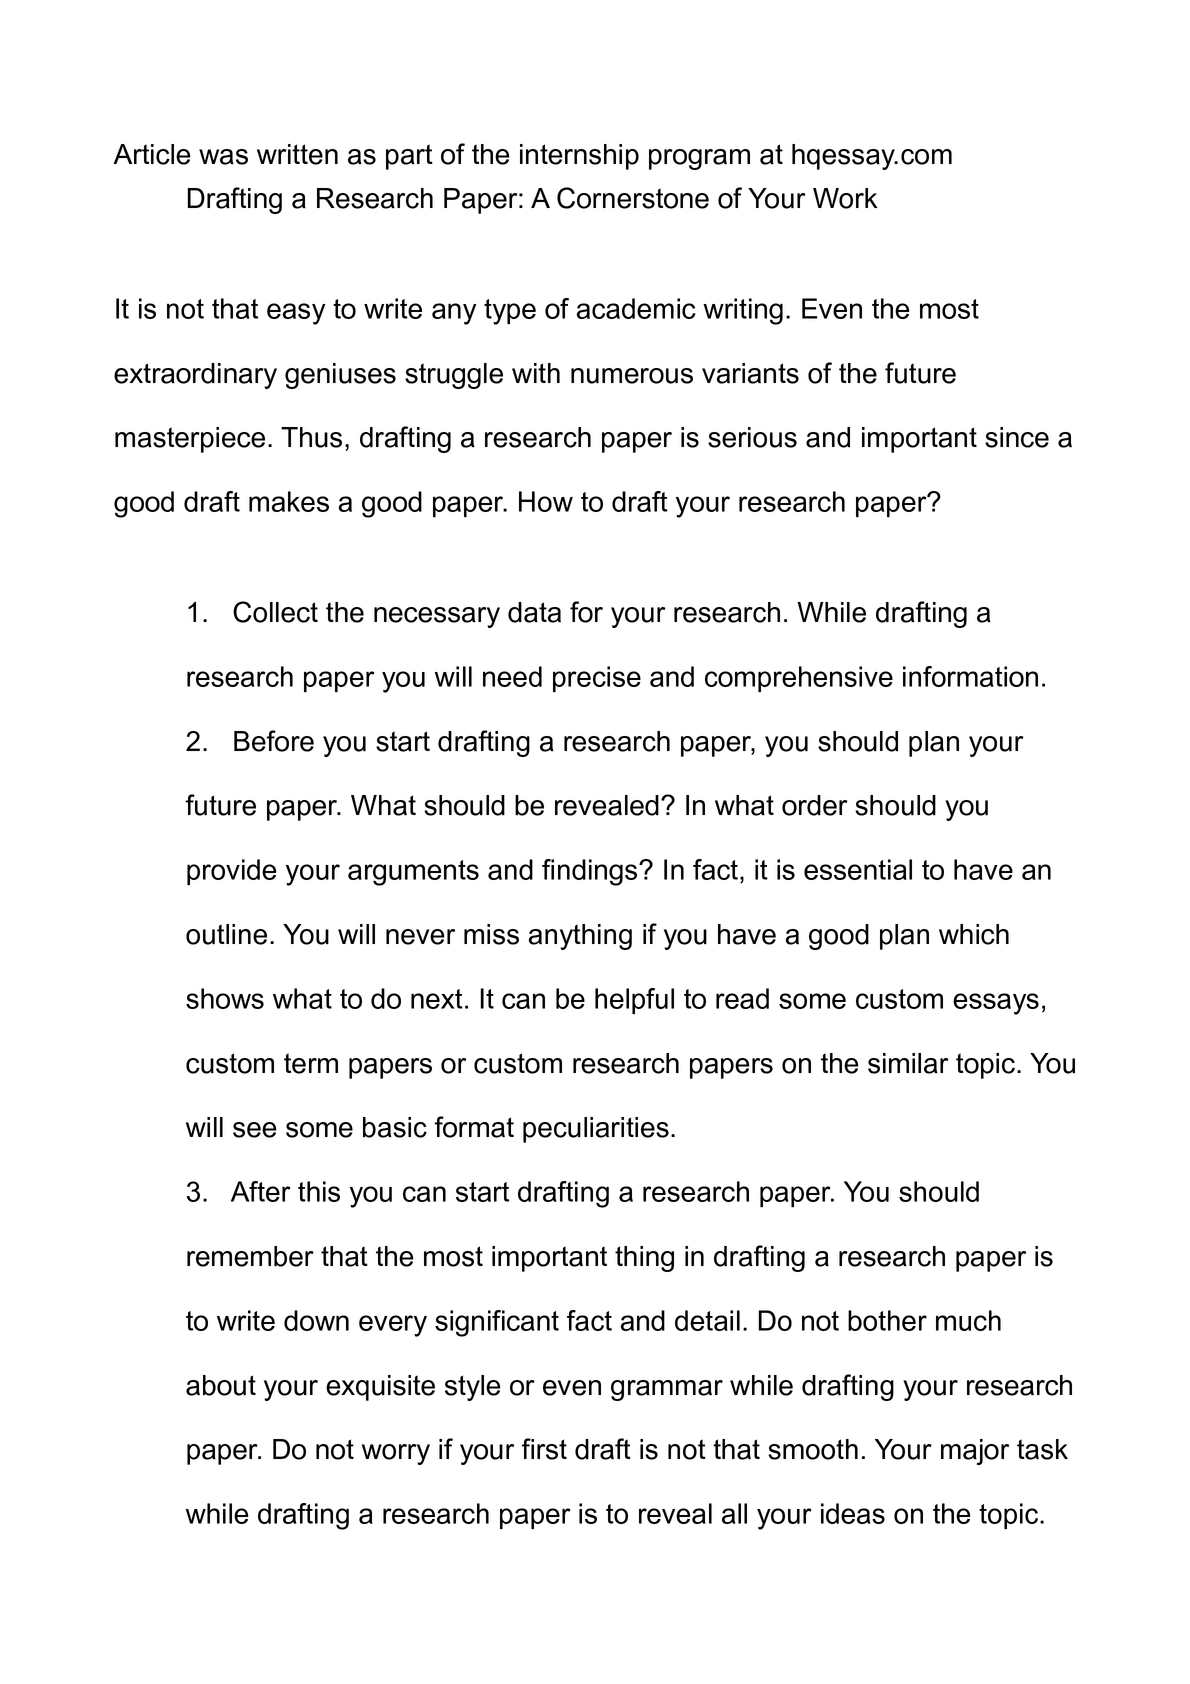 Draft Research Paper